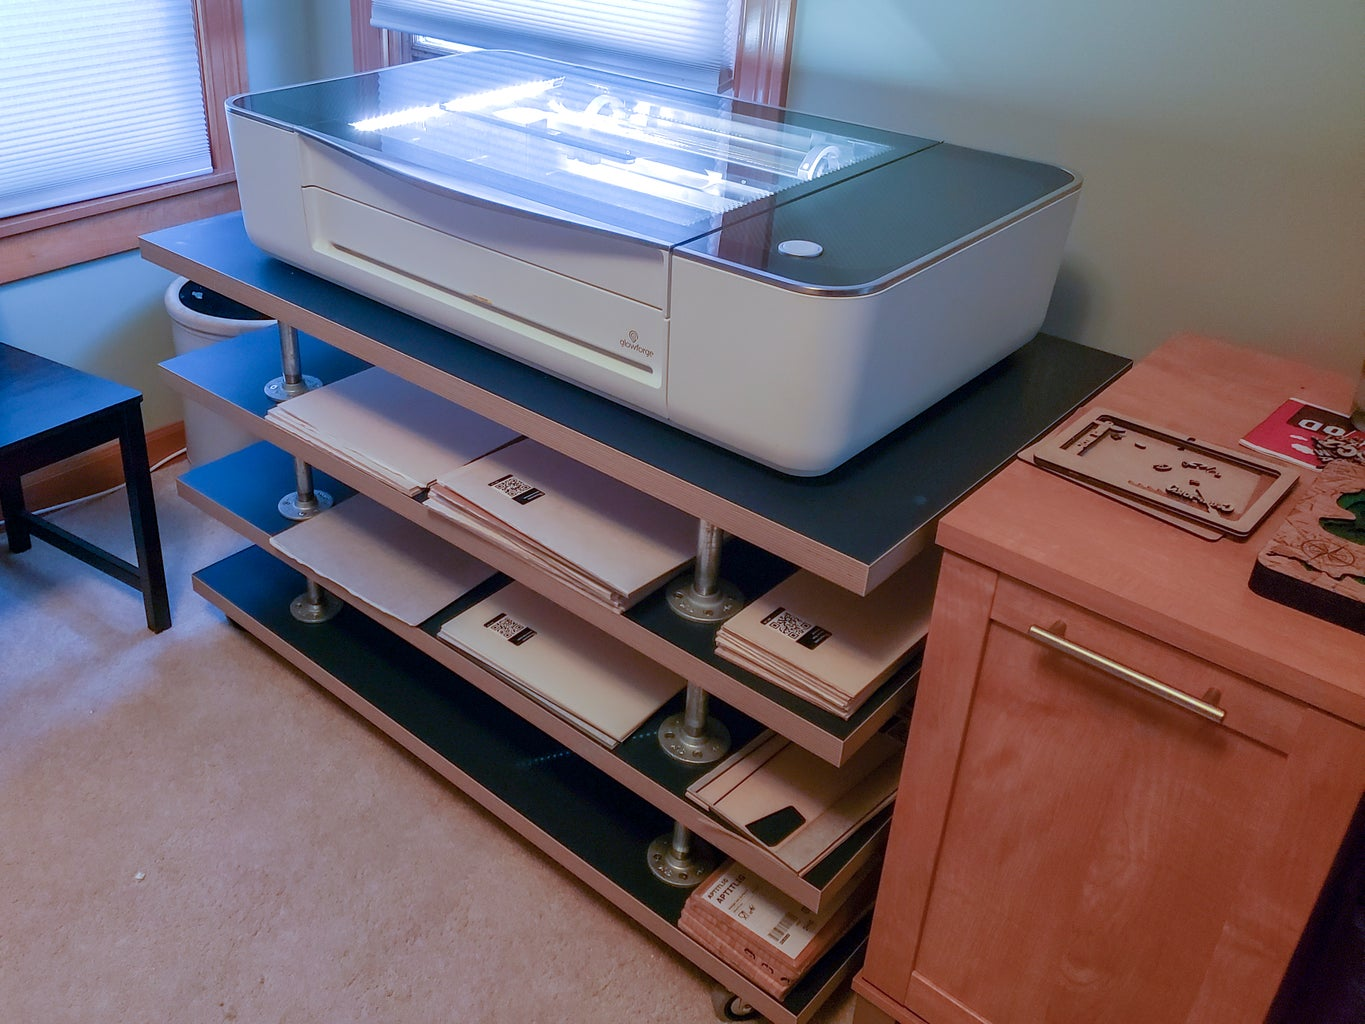 Mount Glowforge and Supplies